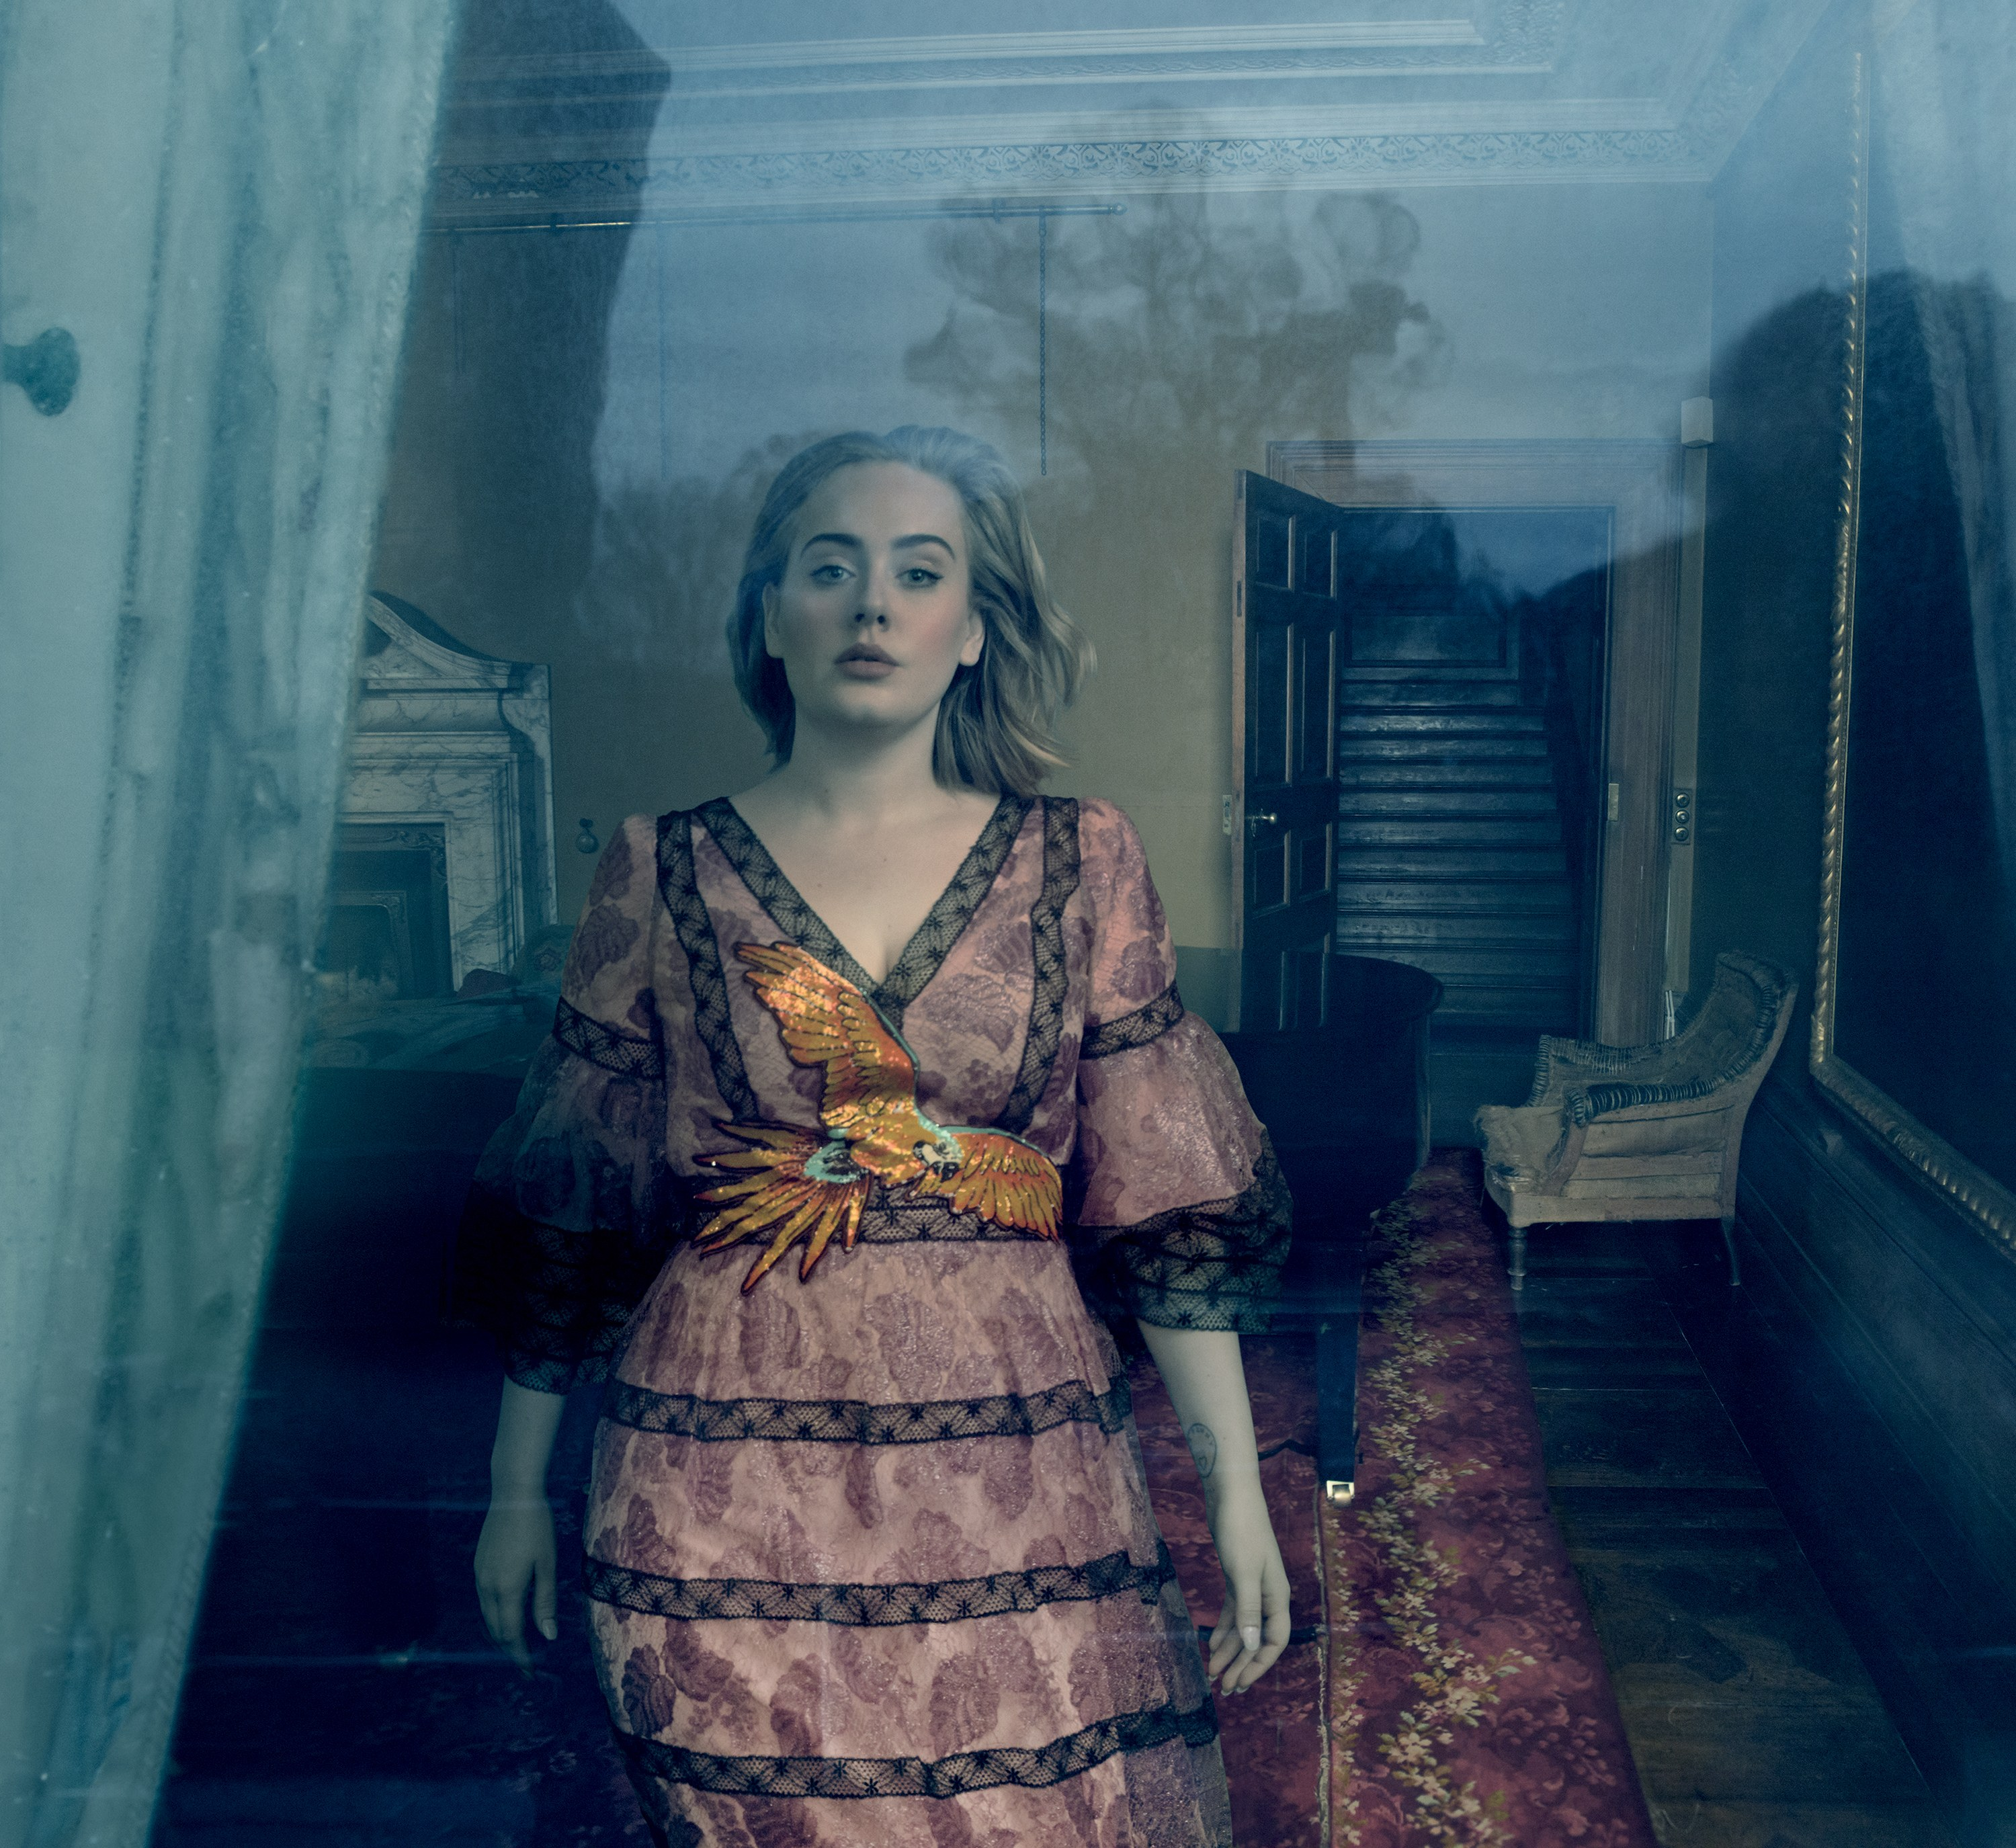 735facbb59c5 Adele images Adele for Vogue HD wallpaper and background photos ...